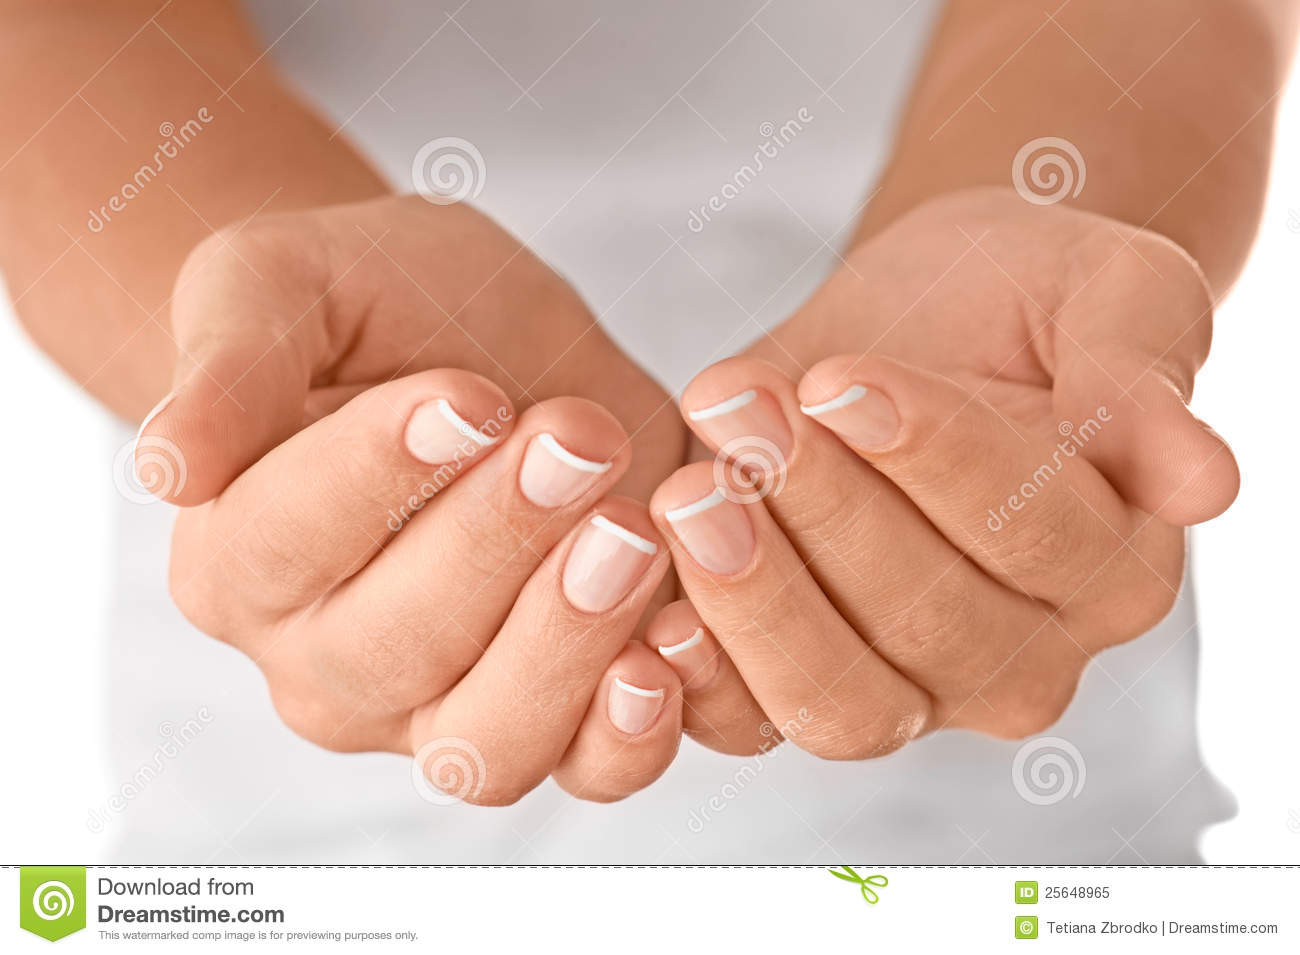 Empty Open Hands Royalty Free Stock Photo - Image: 25648965